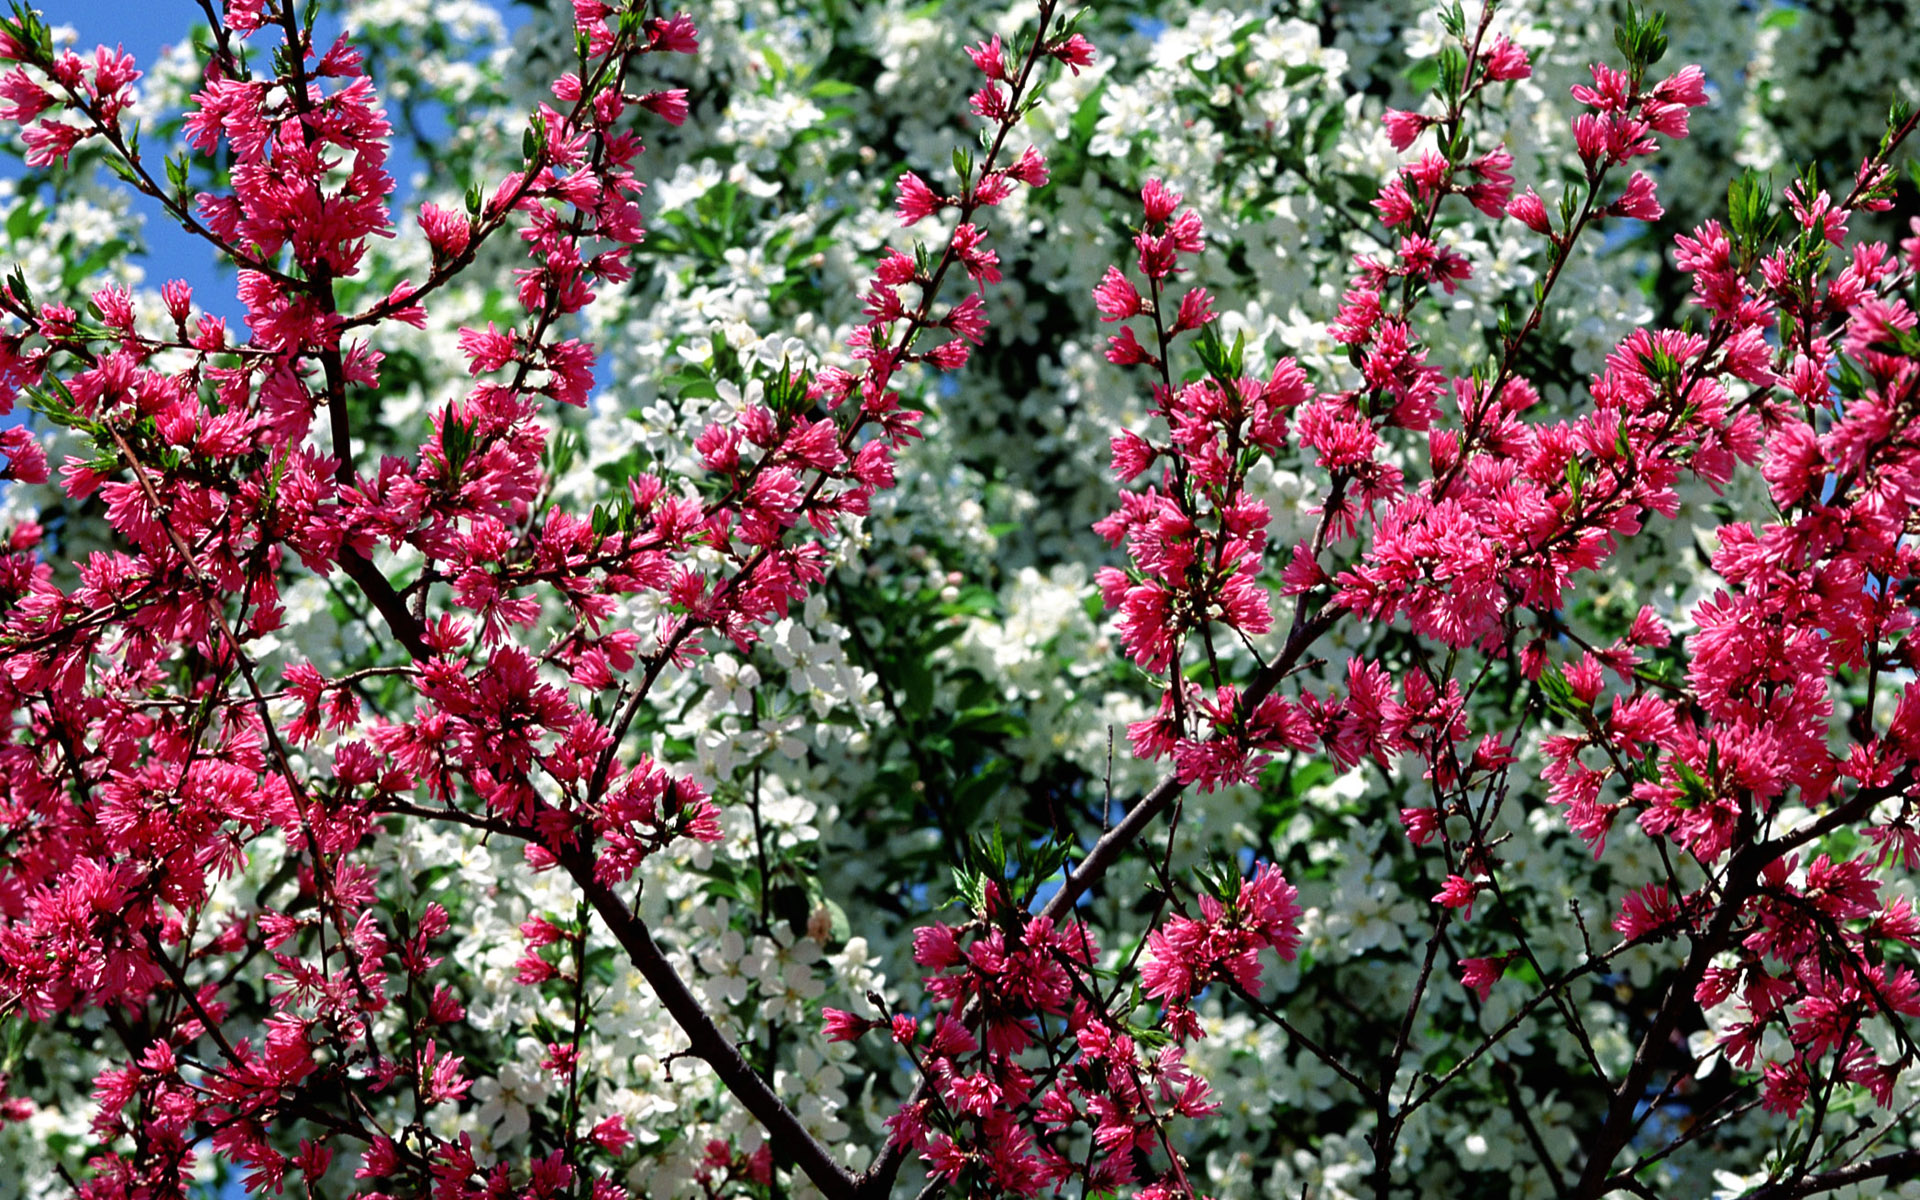 Spring Flowers wallpaper   228108 1920x1200